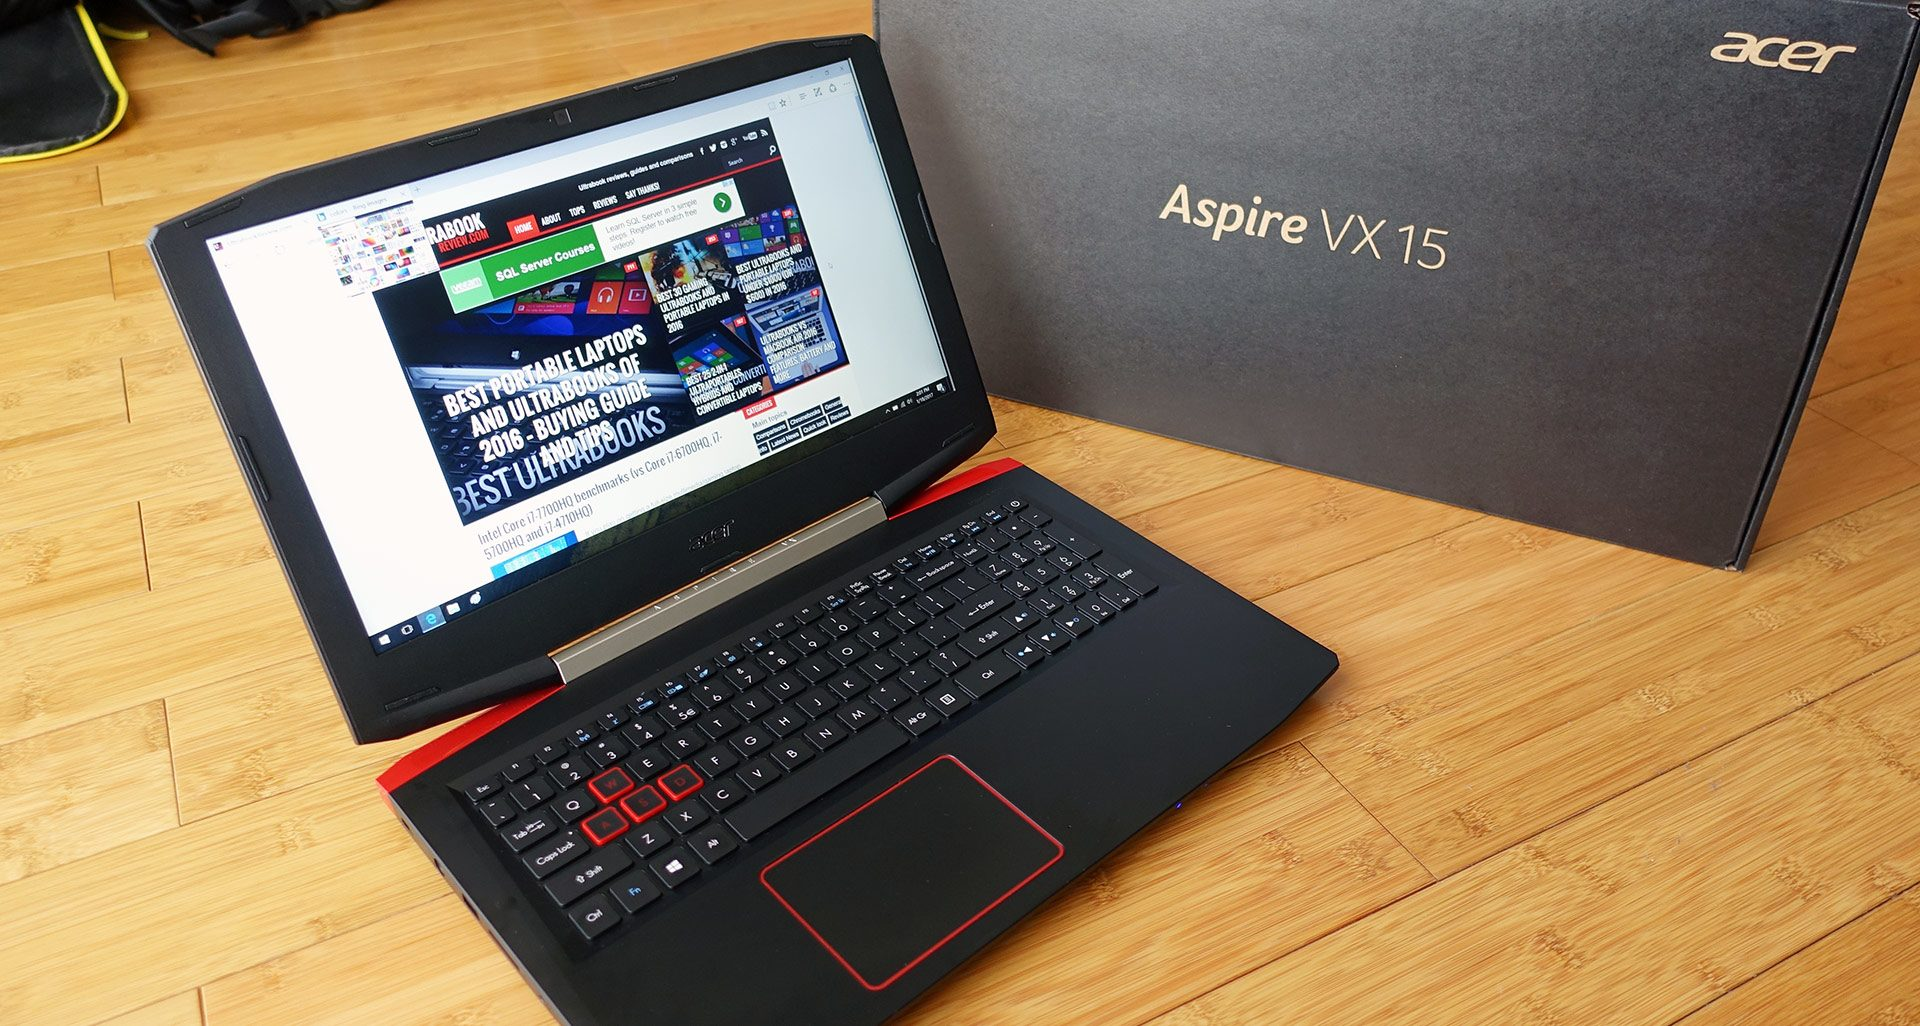 The Aspire VX 15 is a good all round laptop with an excellent price